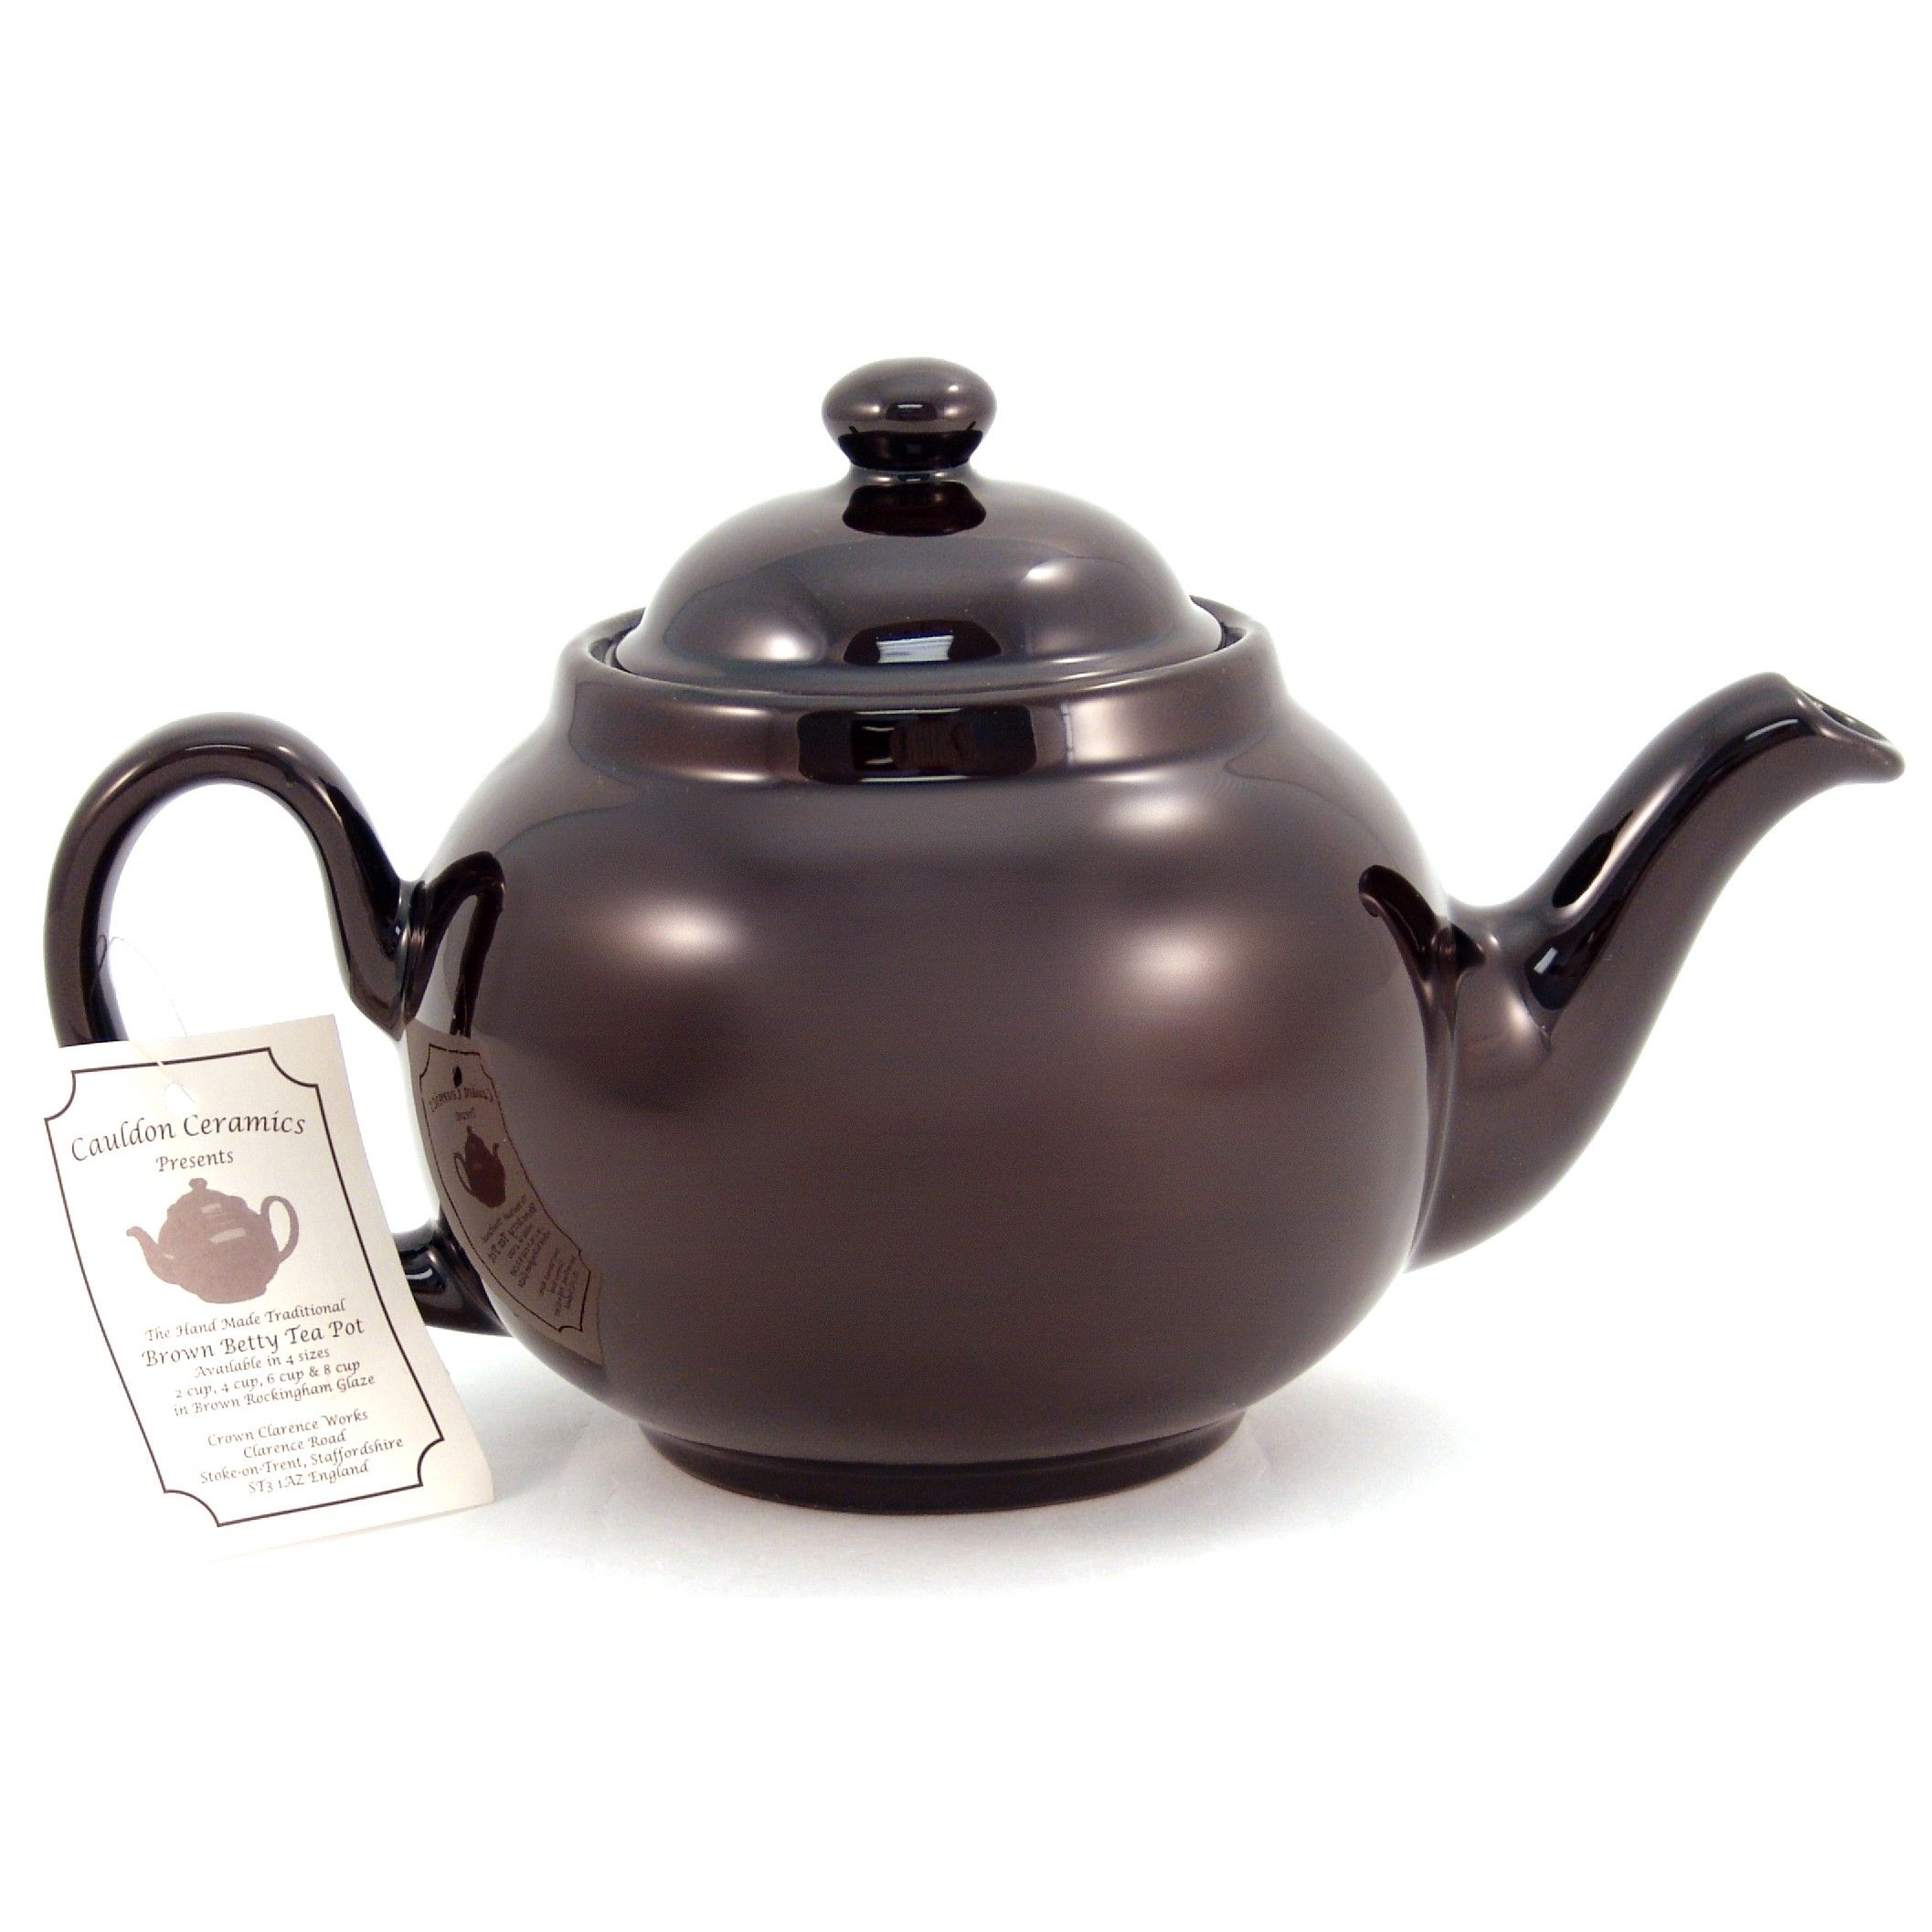 Making Tea In A Teapot Brown Betty Teapot 6 Cup The Real Tea Party Brown